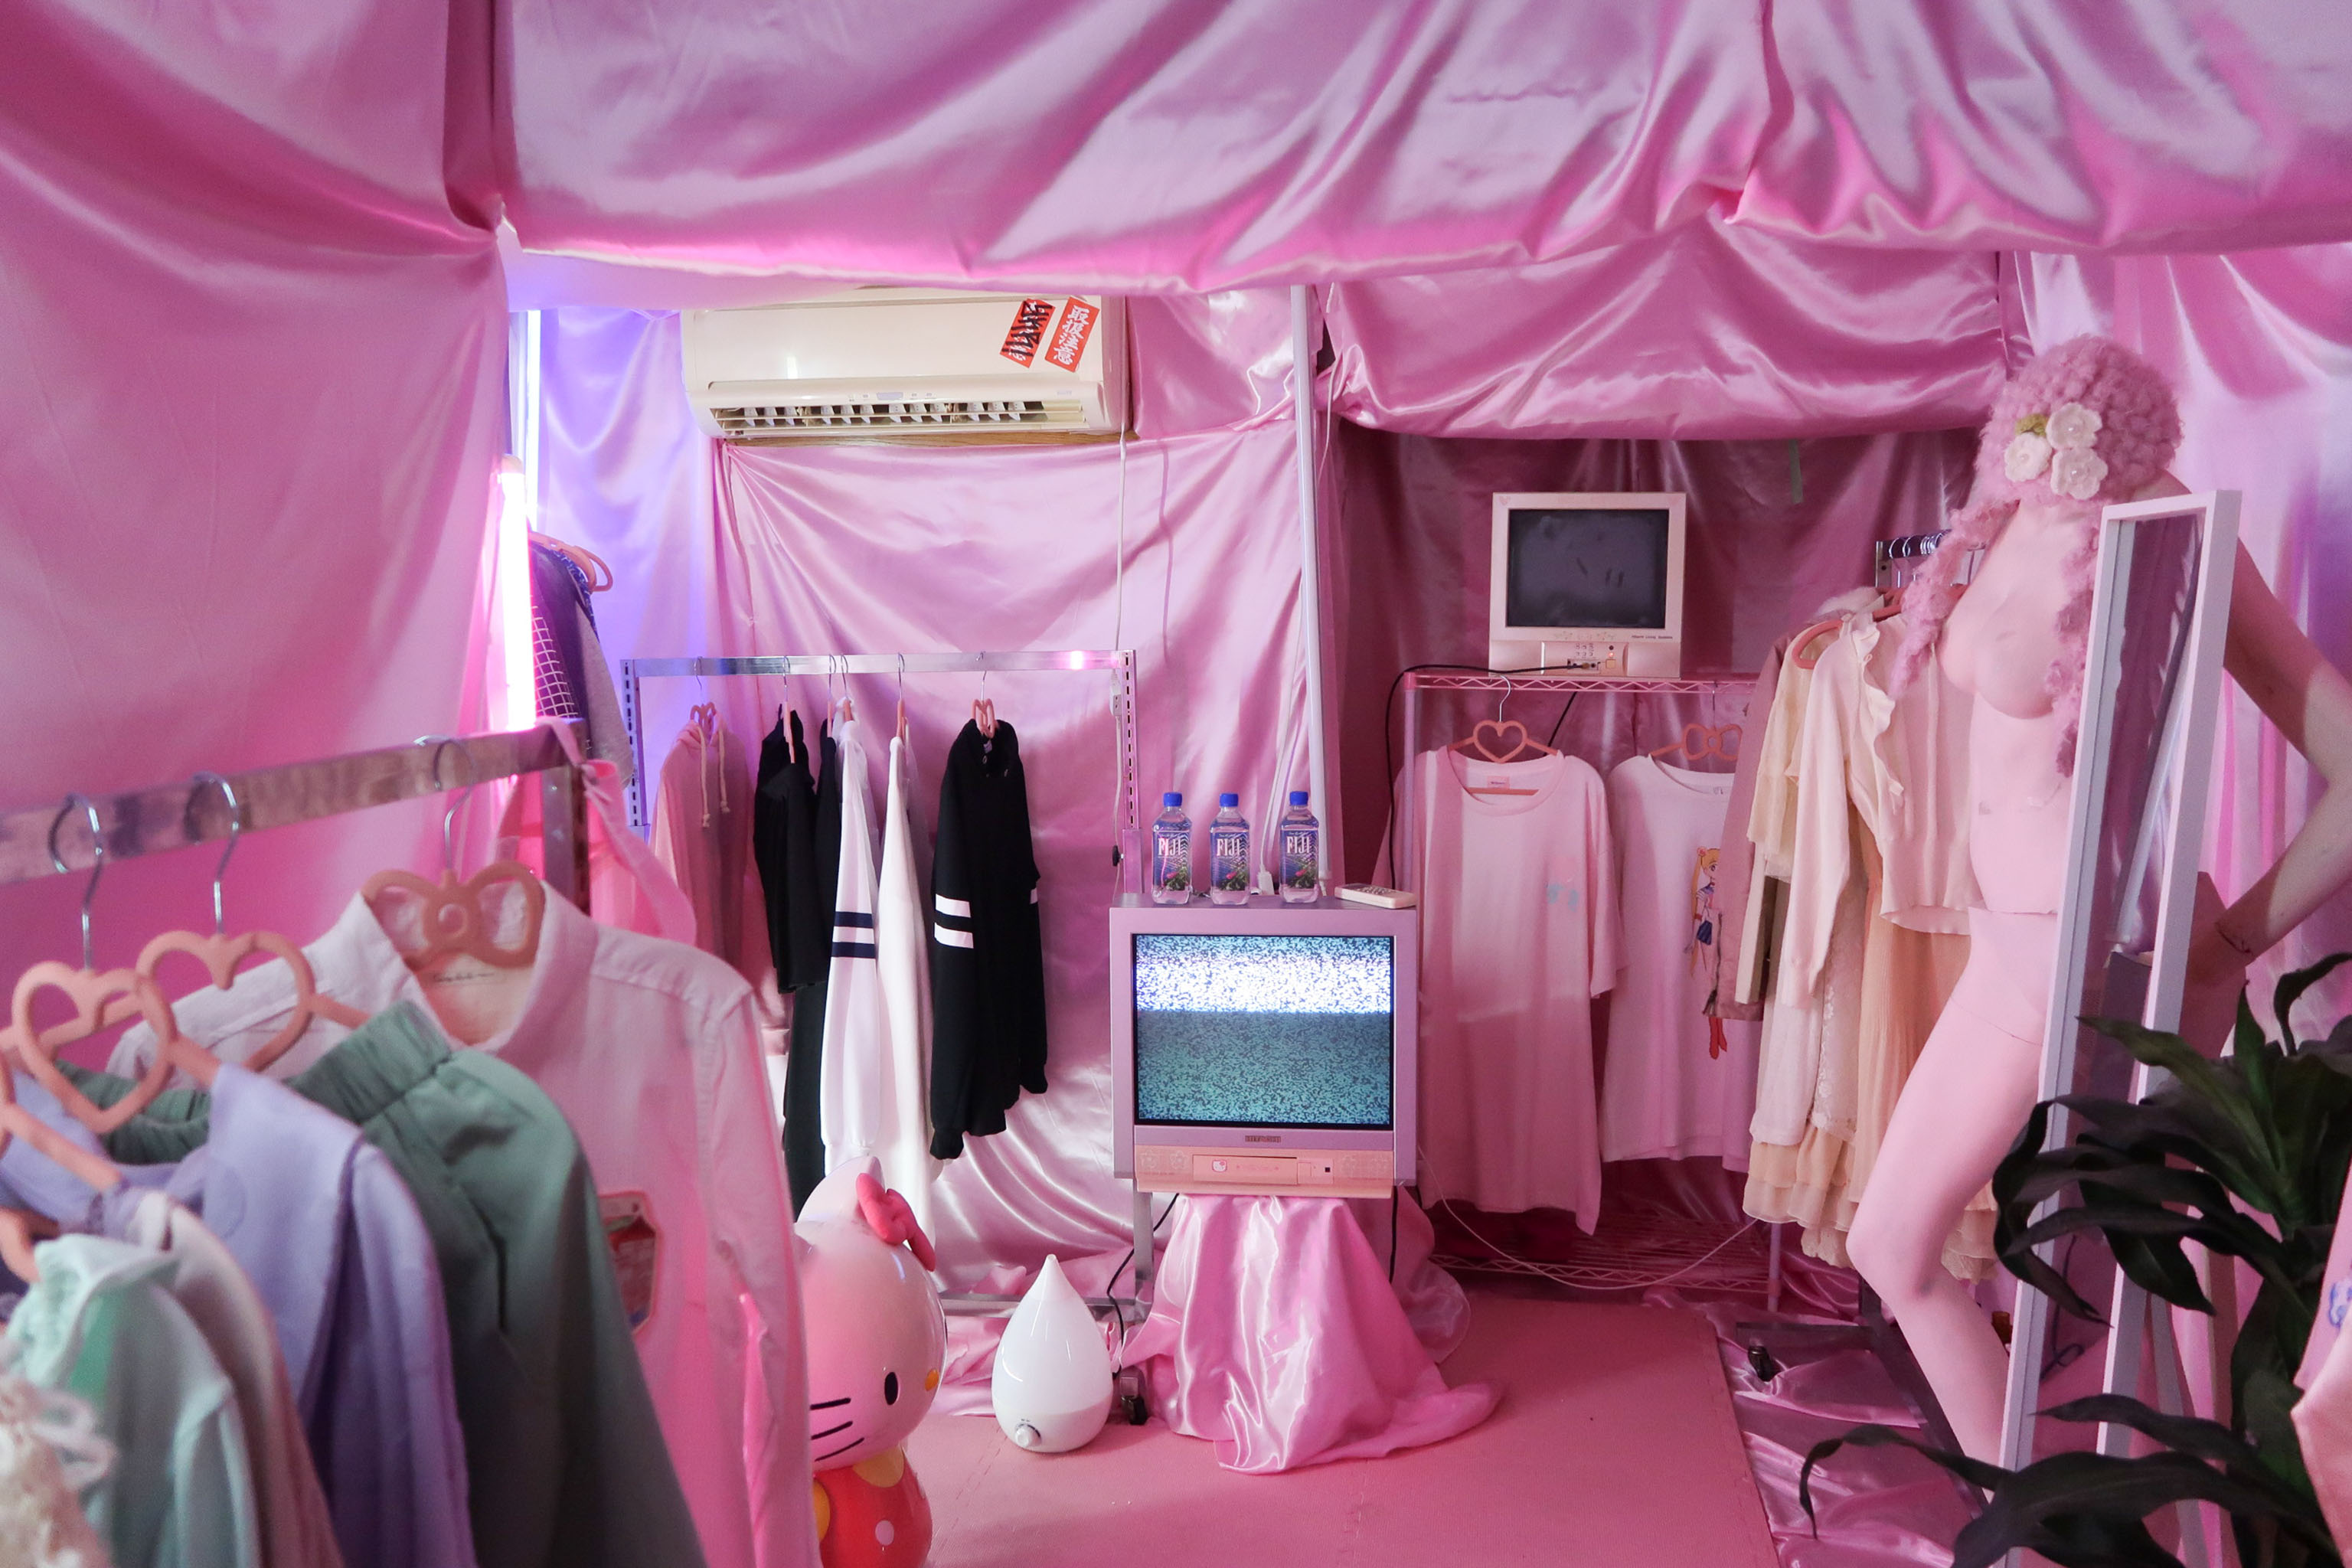 Psychic Shop's second floor — swathed in pink satin.